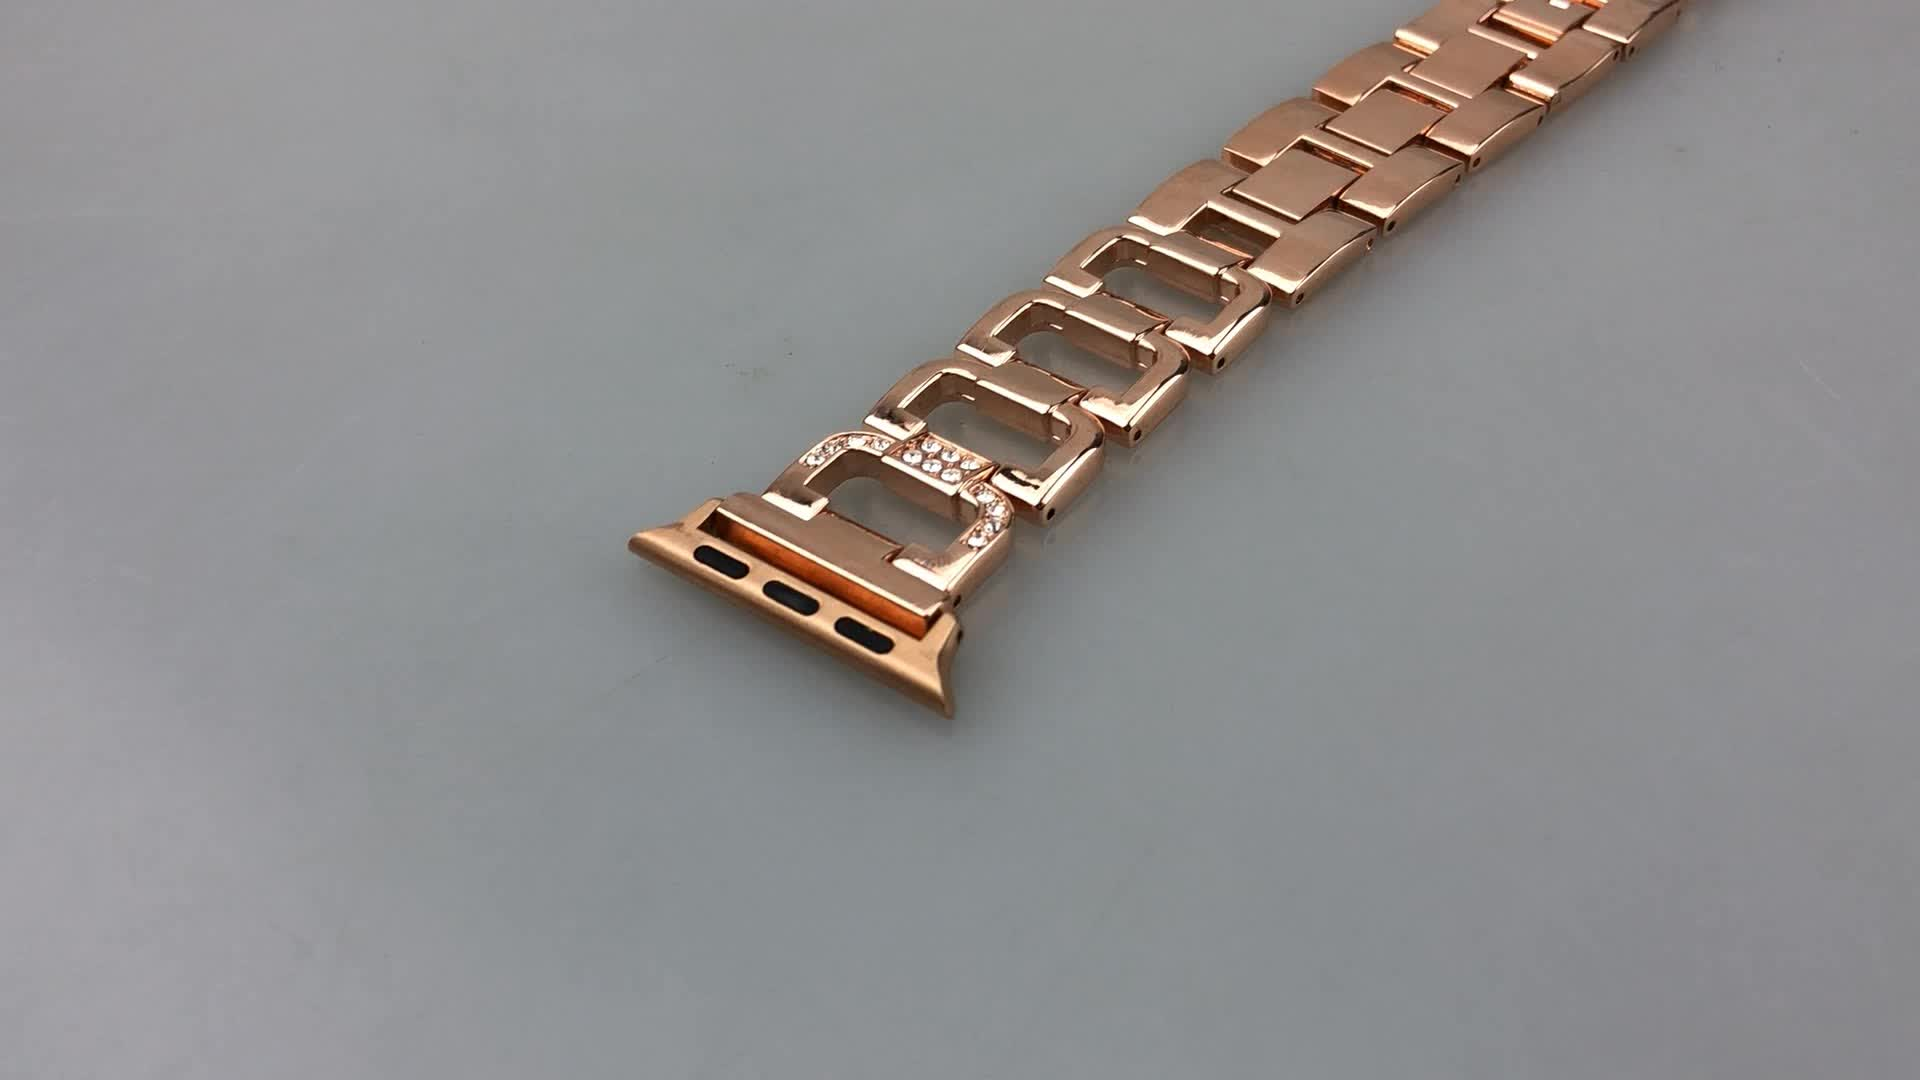 For Fitbit 22mm Metal Watch Strap Stainless Steel 20mm